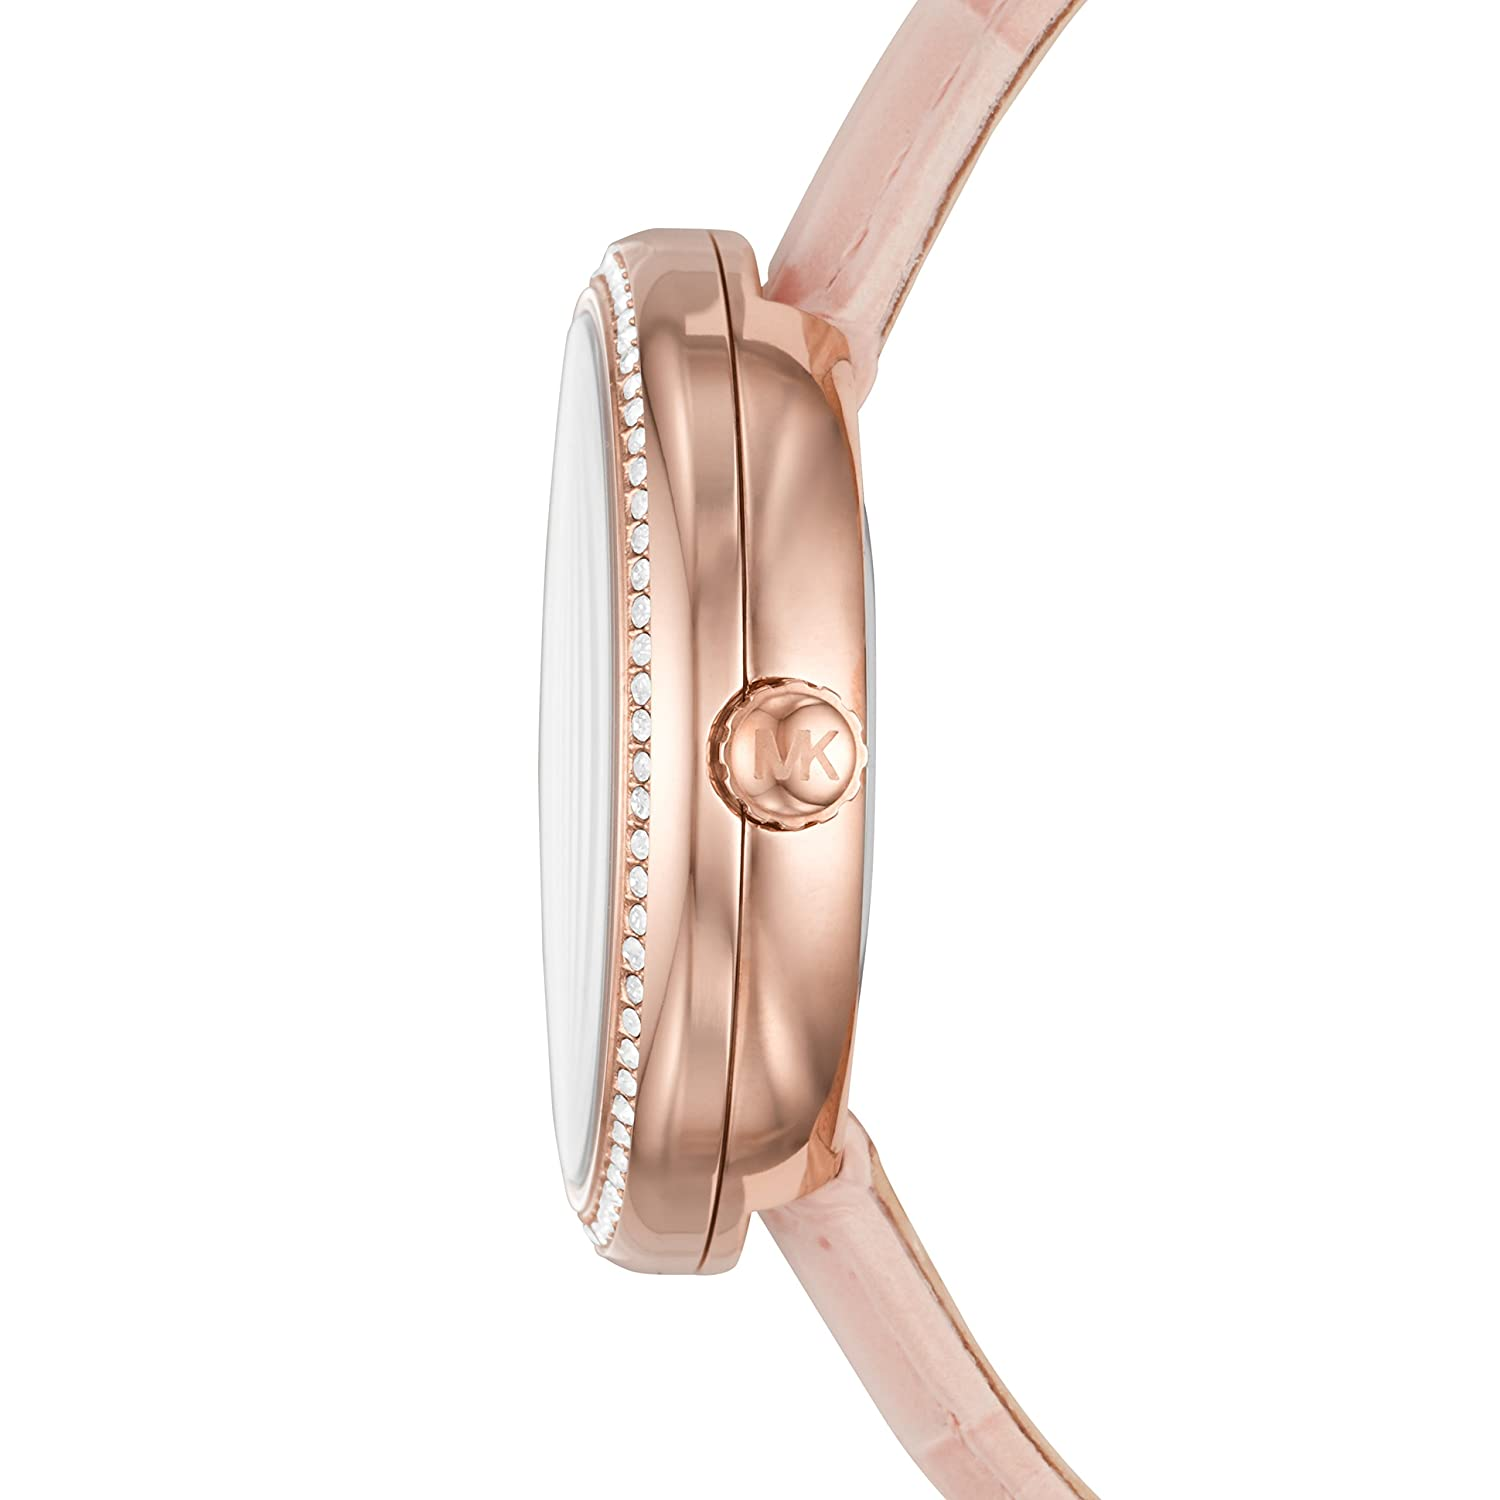 ff0417c9bf28 Amazon.com  Michael Kors Women s Courtney Stainless Steel Analog-Quartz  Watch with Leather Calfskin Strap